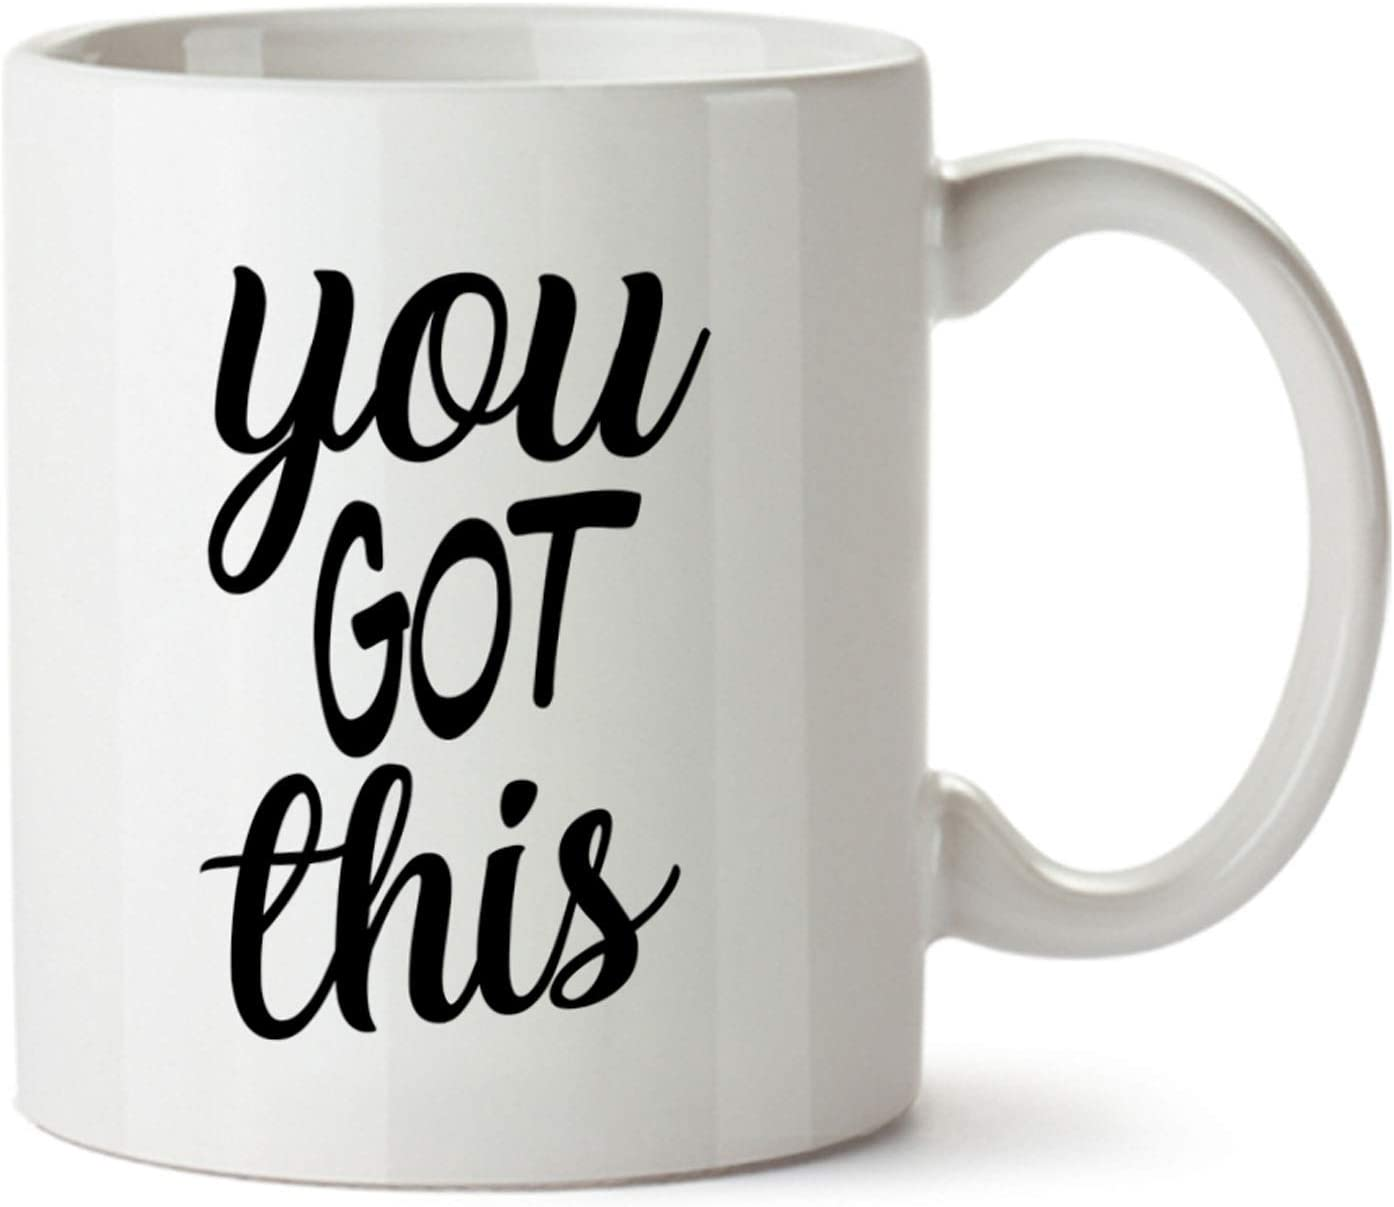 You Got This Black Letters Sign Funny Design White Coffee Mug - Ceramic - Tea Cup - 11 oz - Black White Funny Great Gift Decor for Home, Office, Work for Boss, Co-workers, Best Friends, Boyfriend